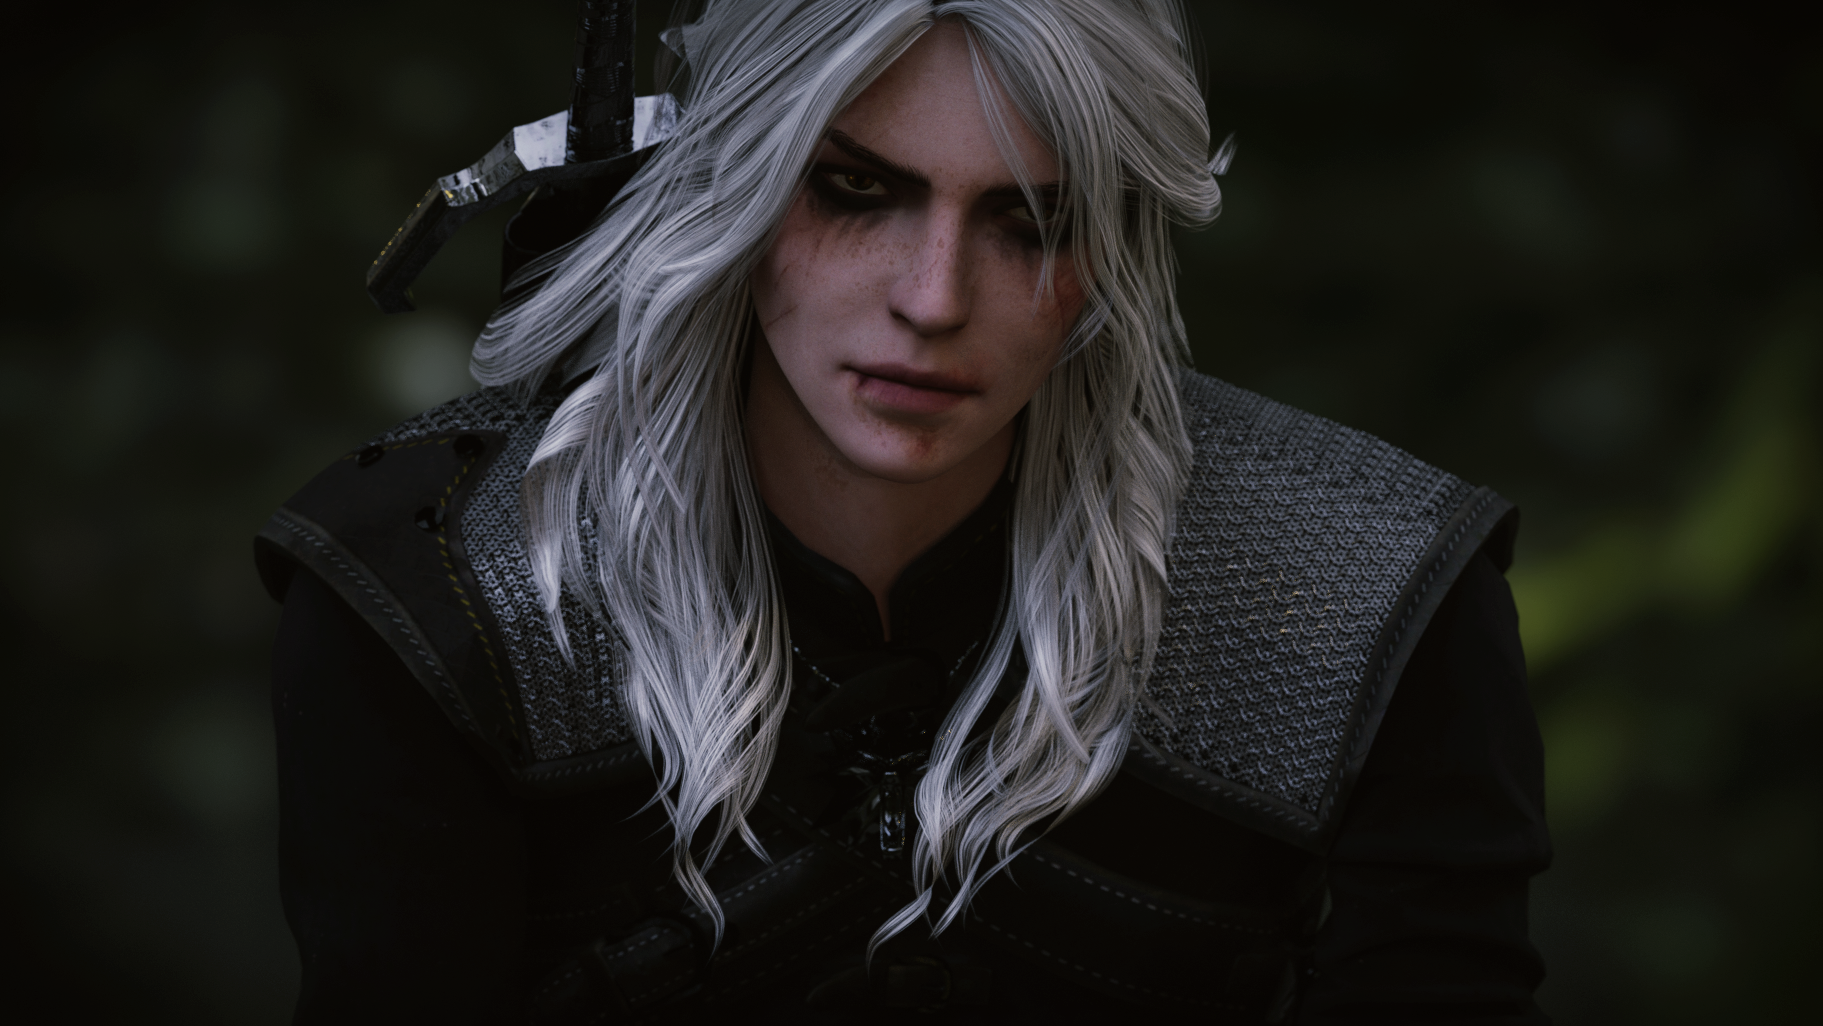 The-Witcher-фэндомы-The-Witcher-3-Wild-Hunt-Цири-5904551.png - The Witcher 3: Wild Hunt